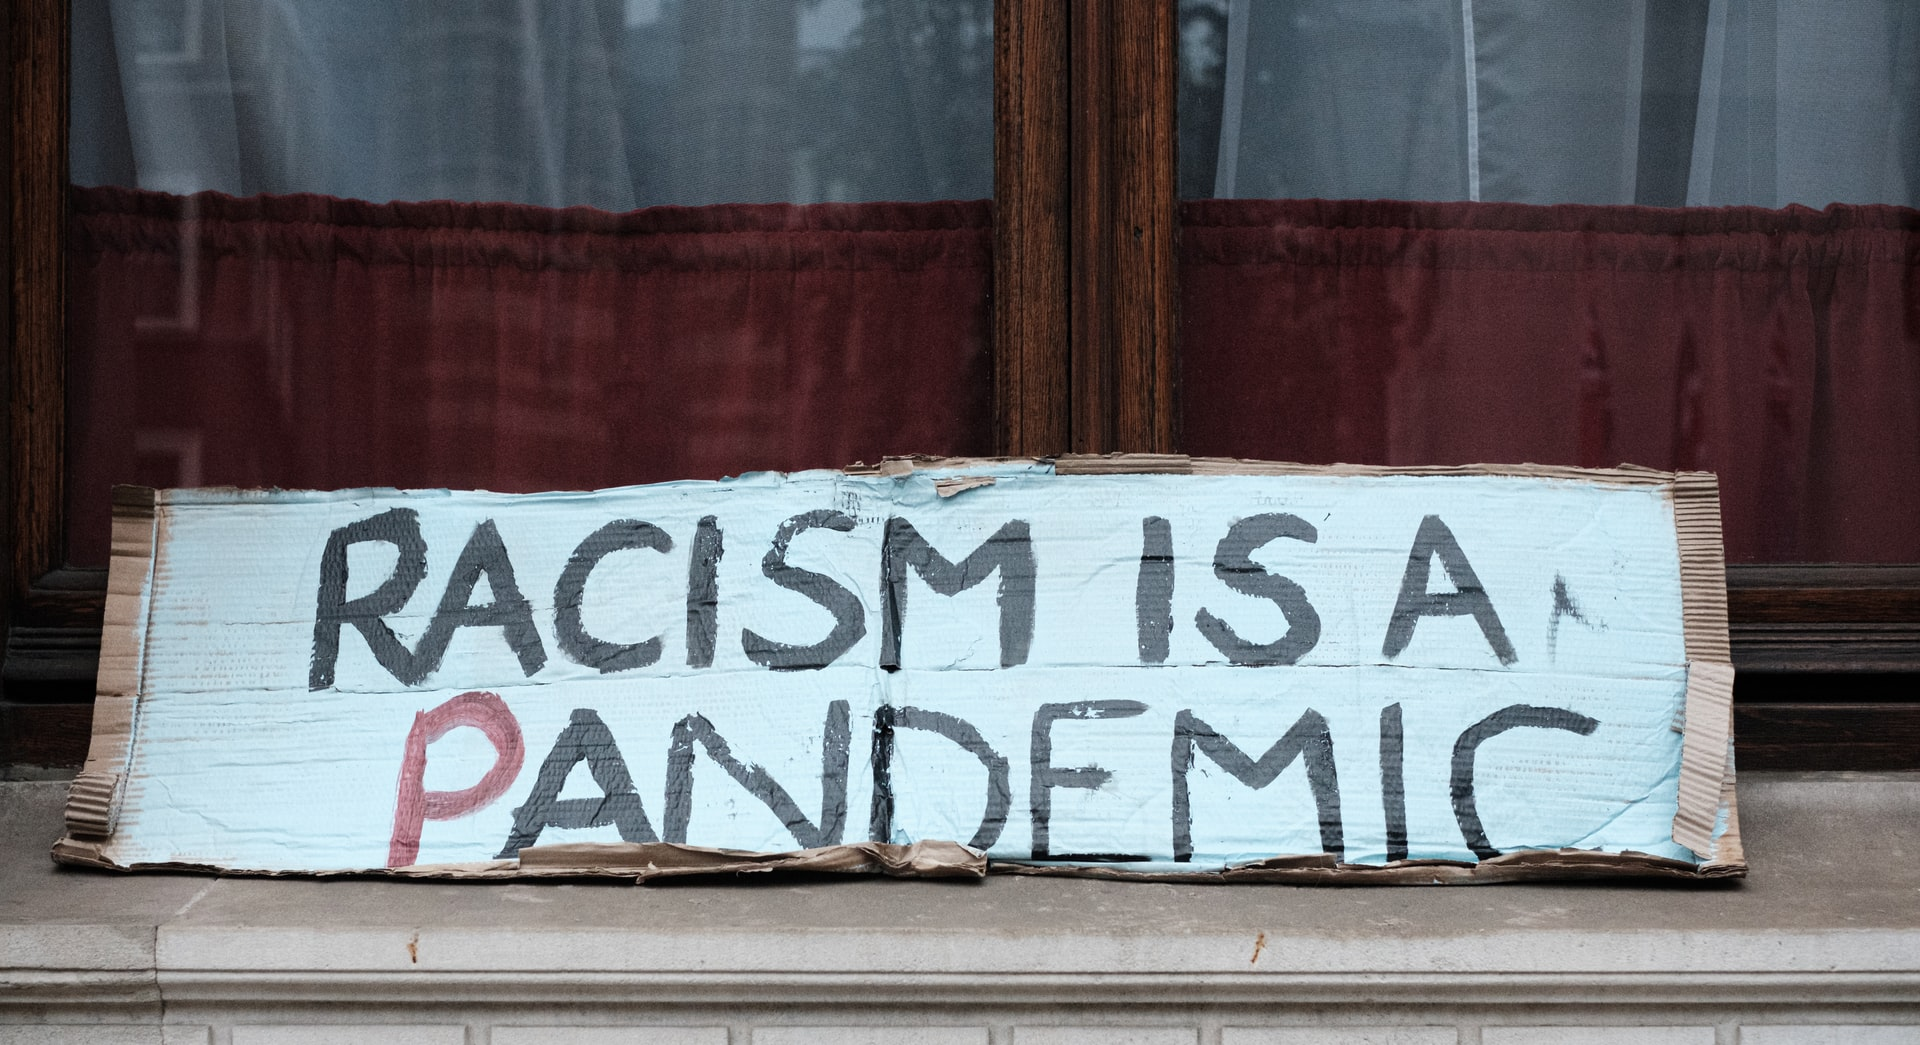 Addressing racism embedded within the criminal justice system